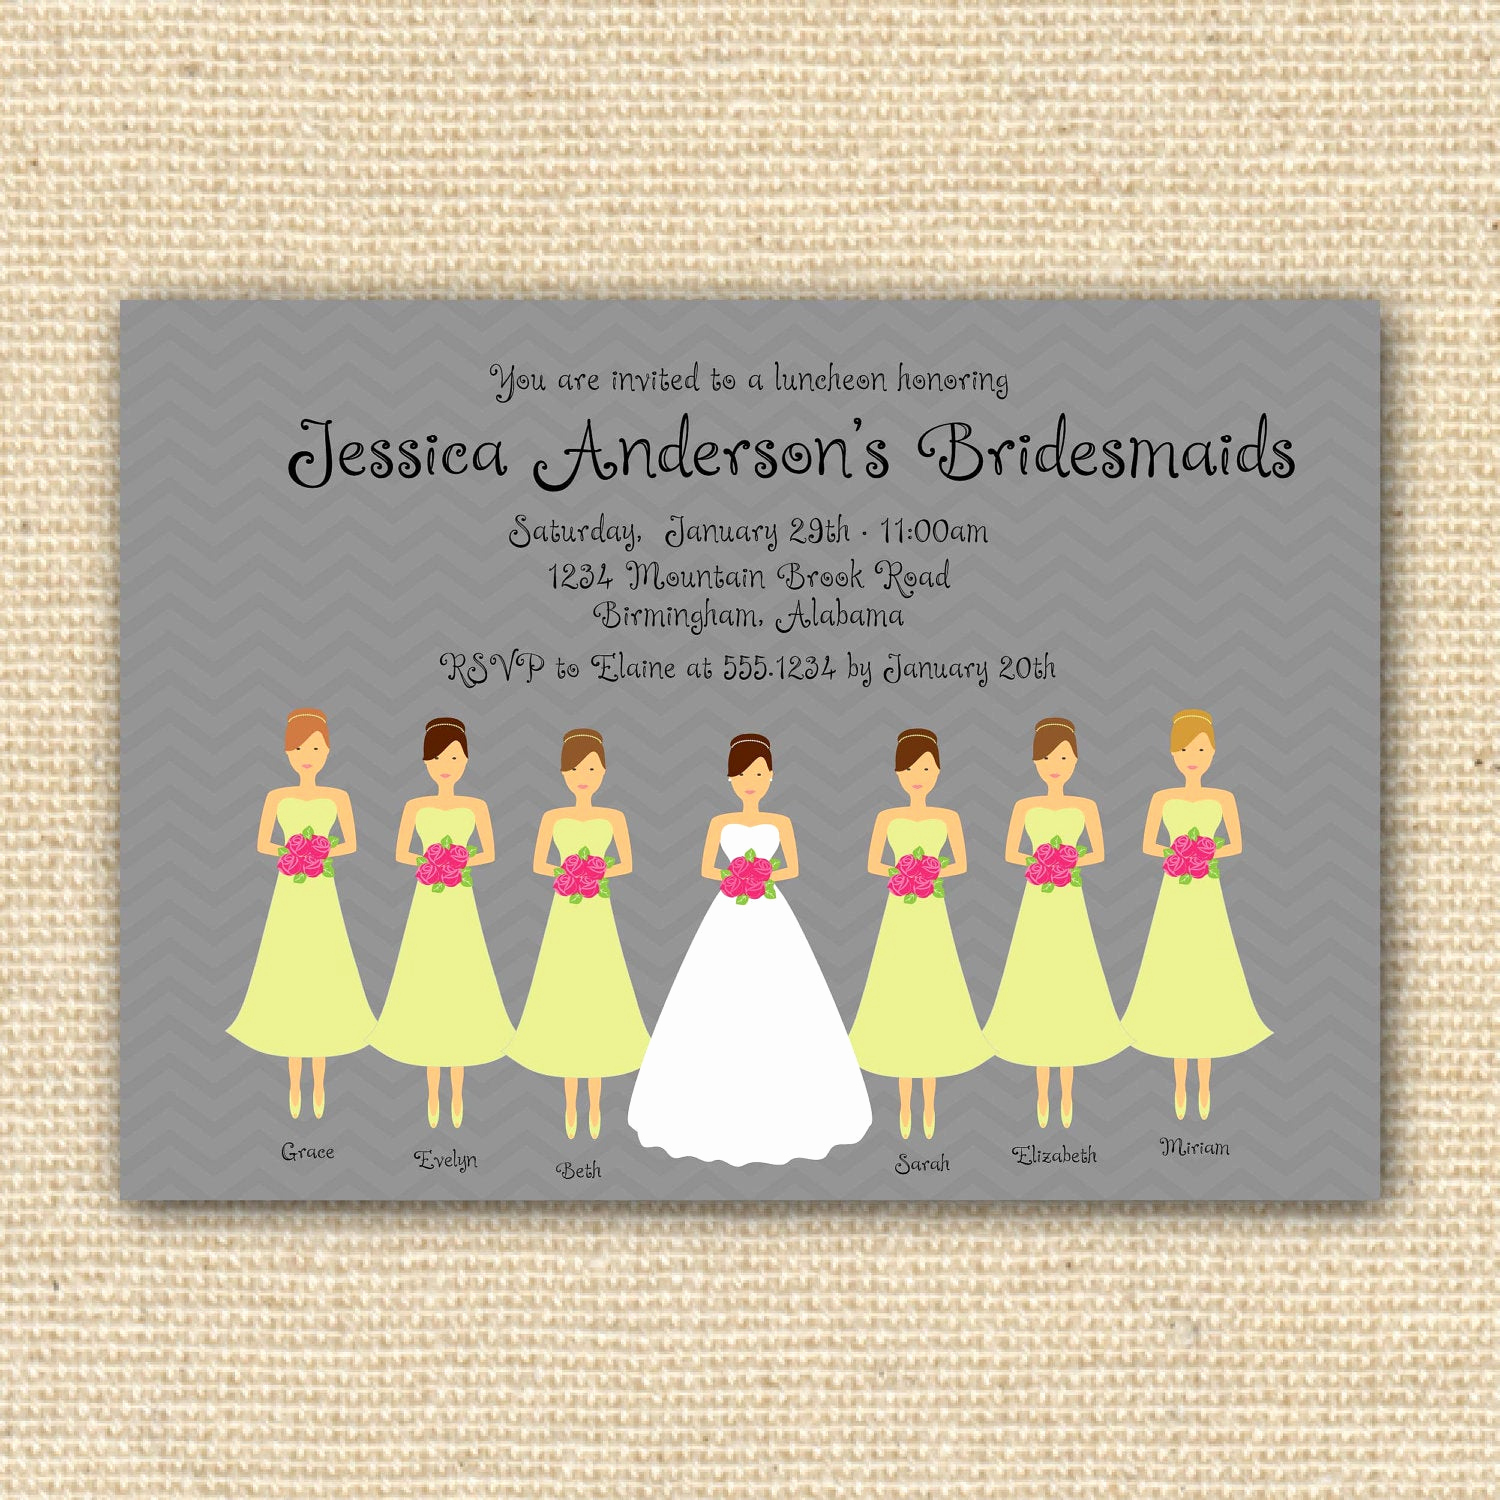 Bridesmaid Luncheon Invitation Wording Fresh Bridesmaids Luncheon Invitation Bridal Brunch Diy